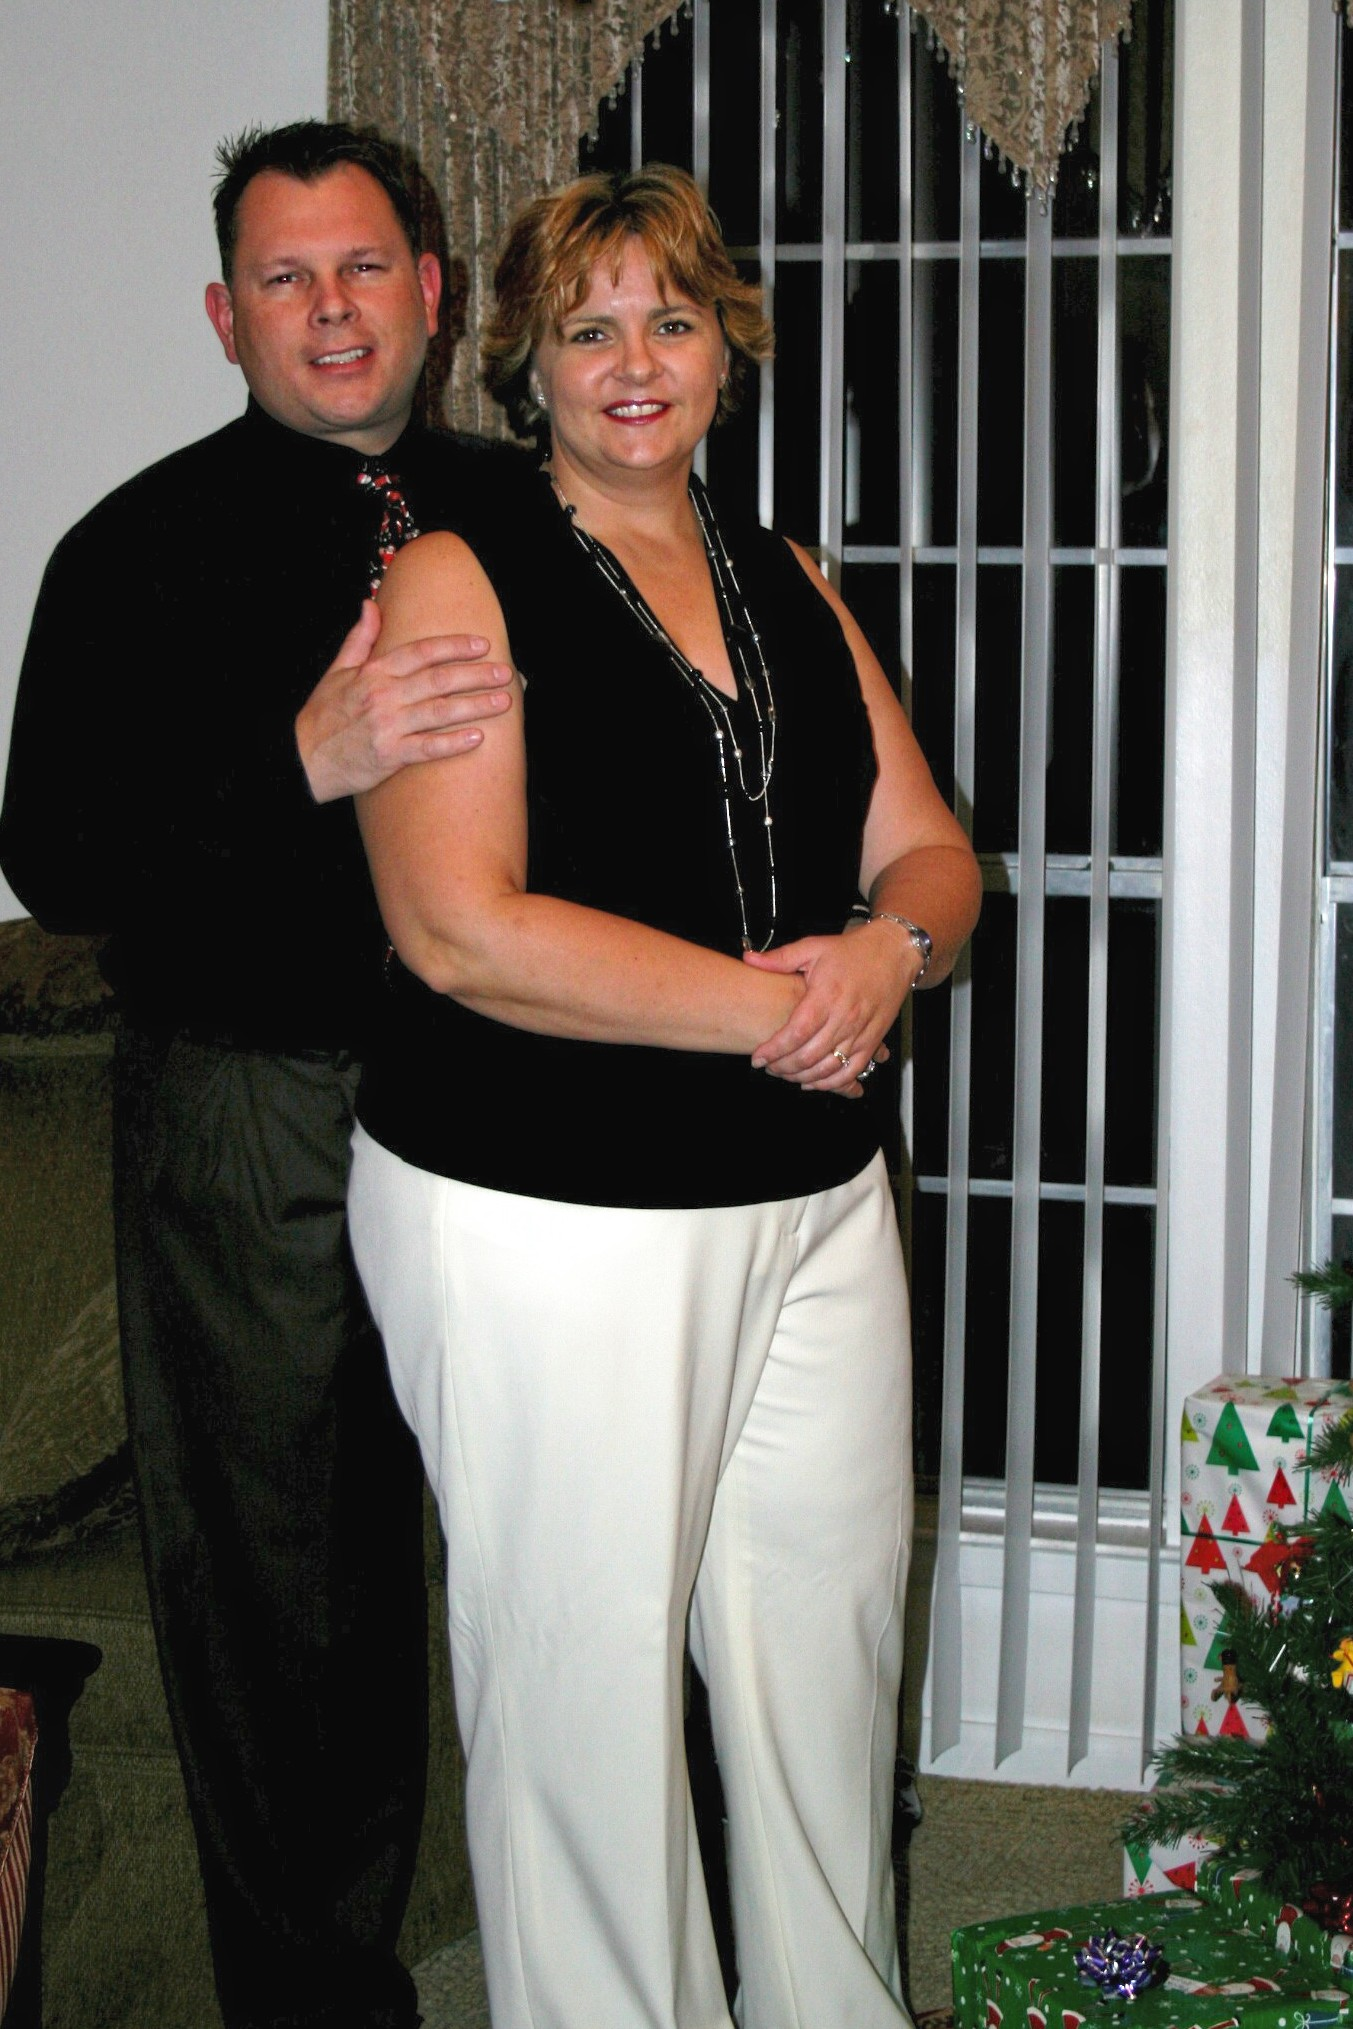 Xmas 2006 (before 75 lb loss)